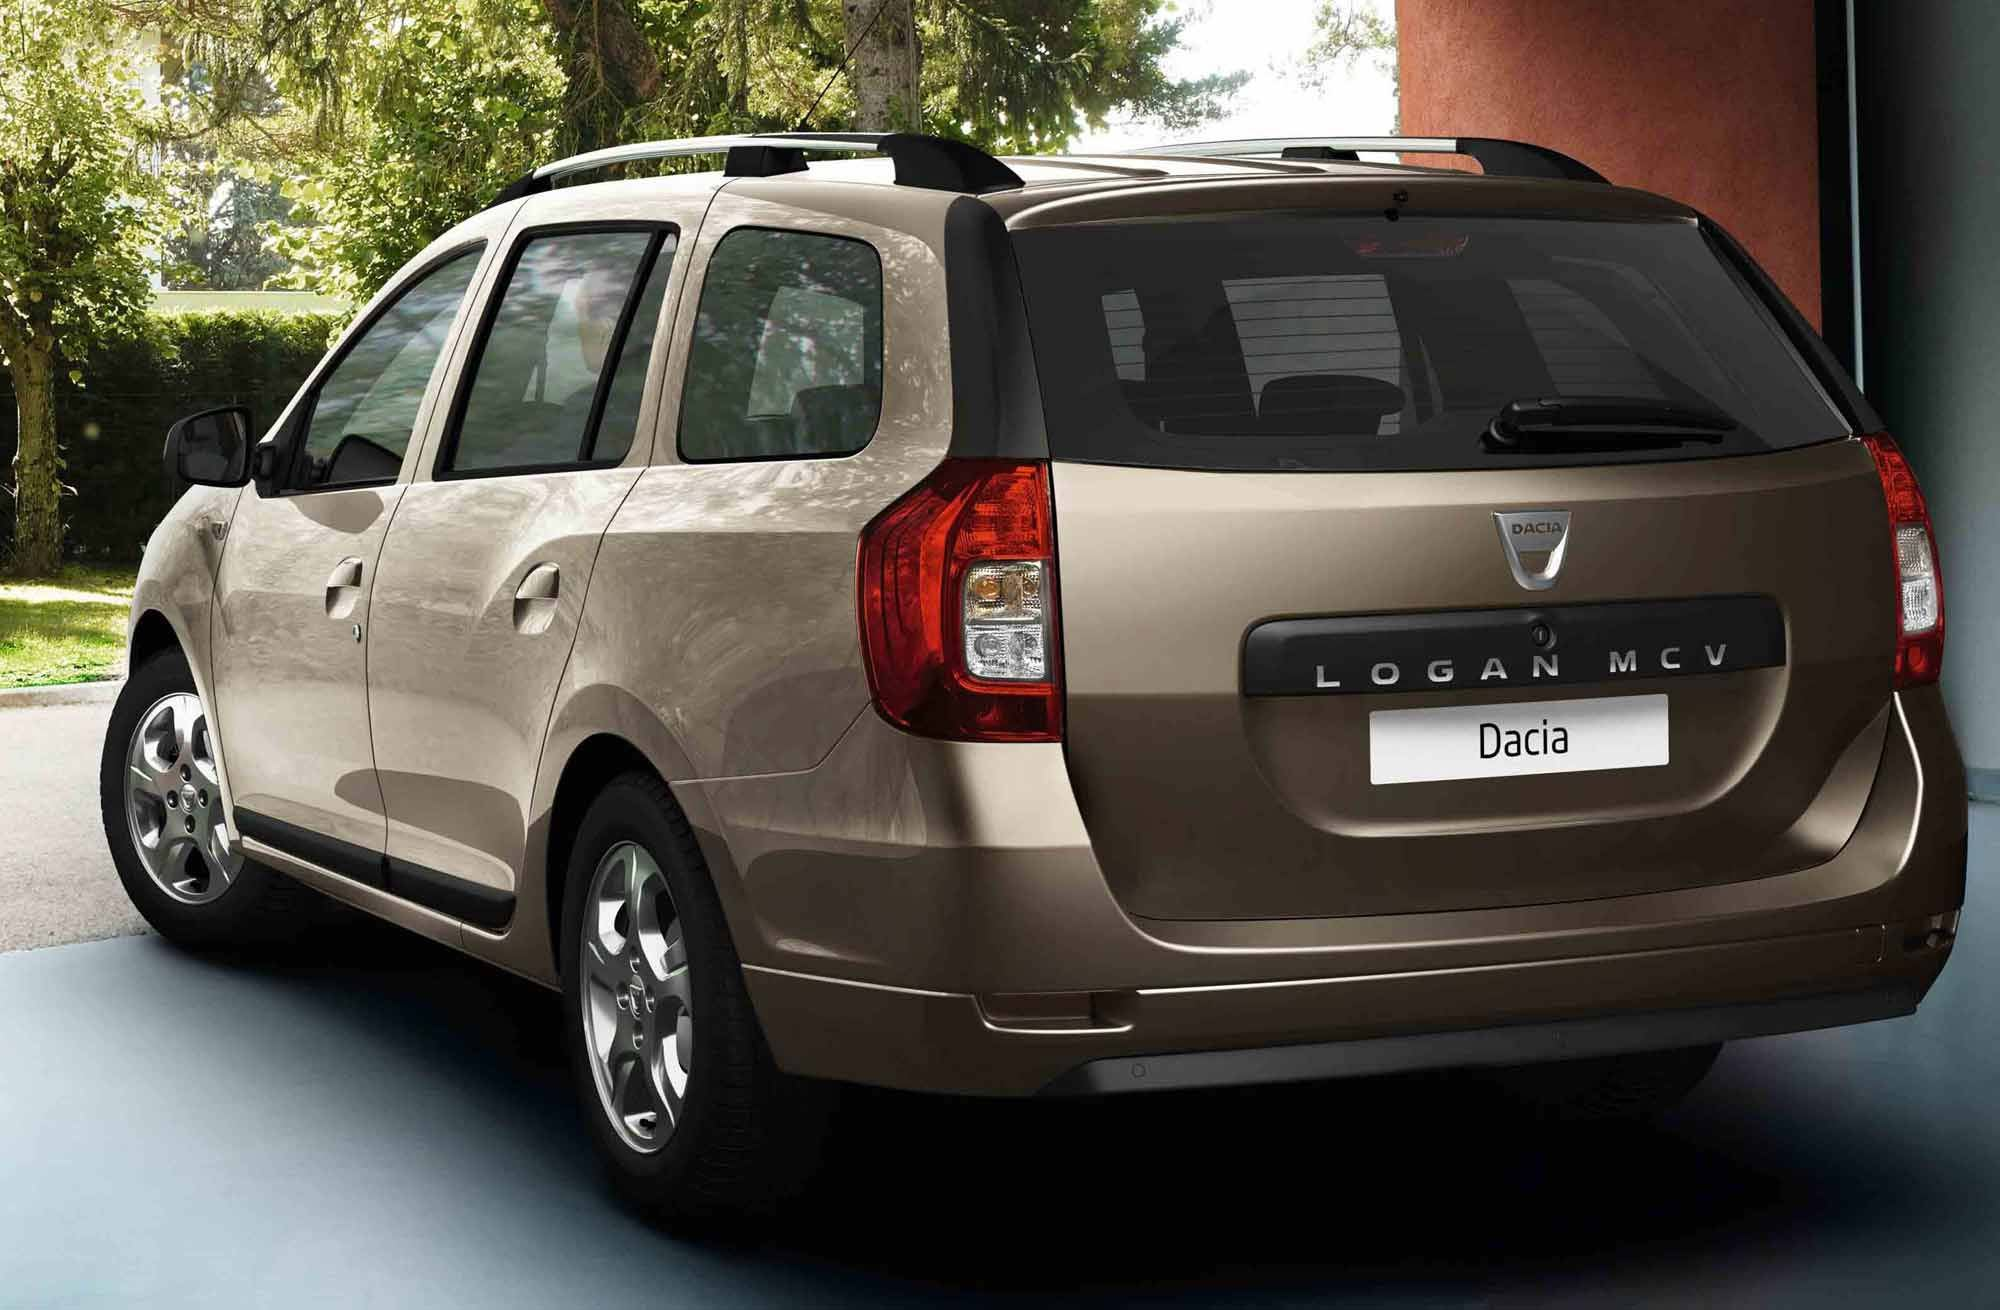 Dacia Logan Mcv  El Familiar M U00e1s Asequible